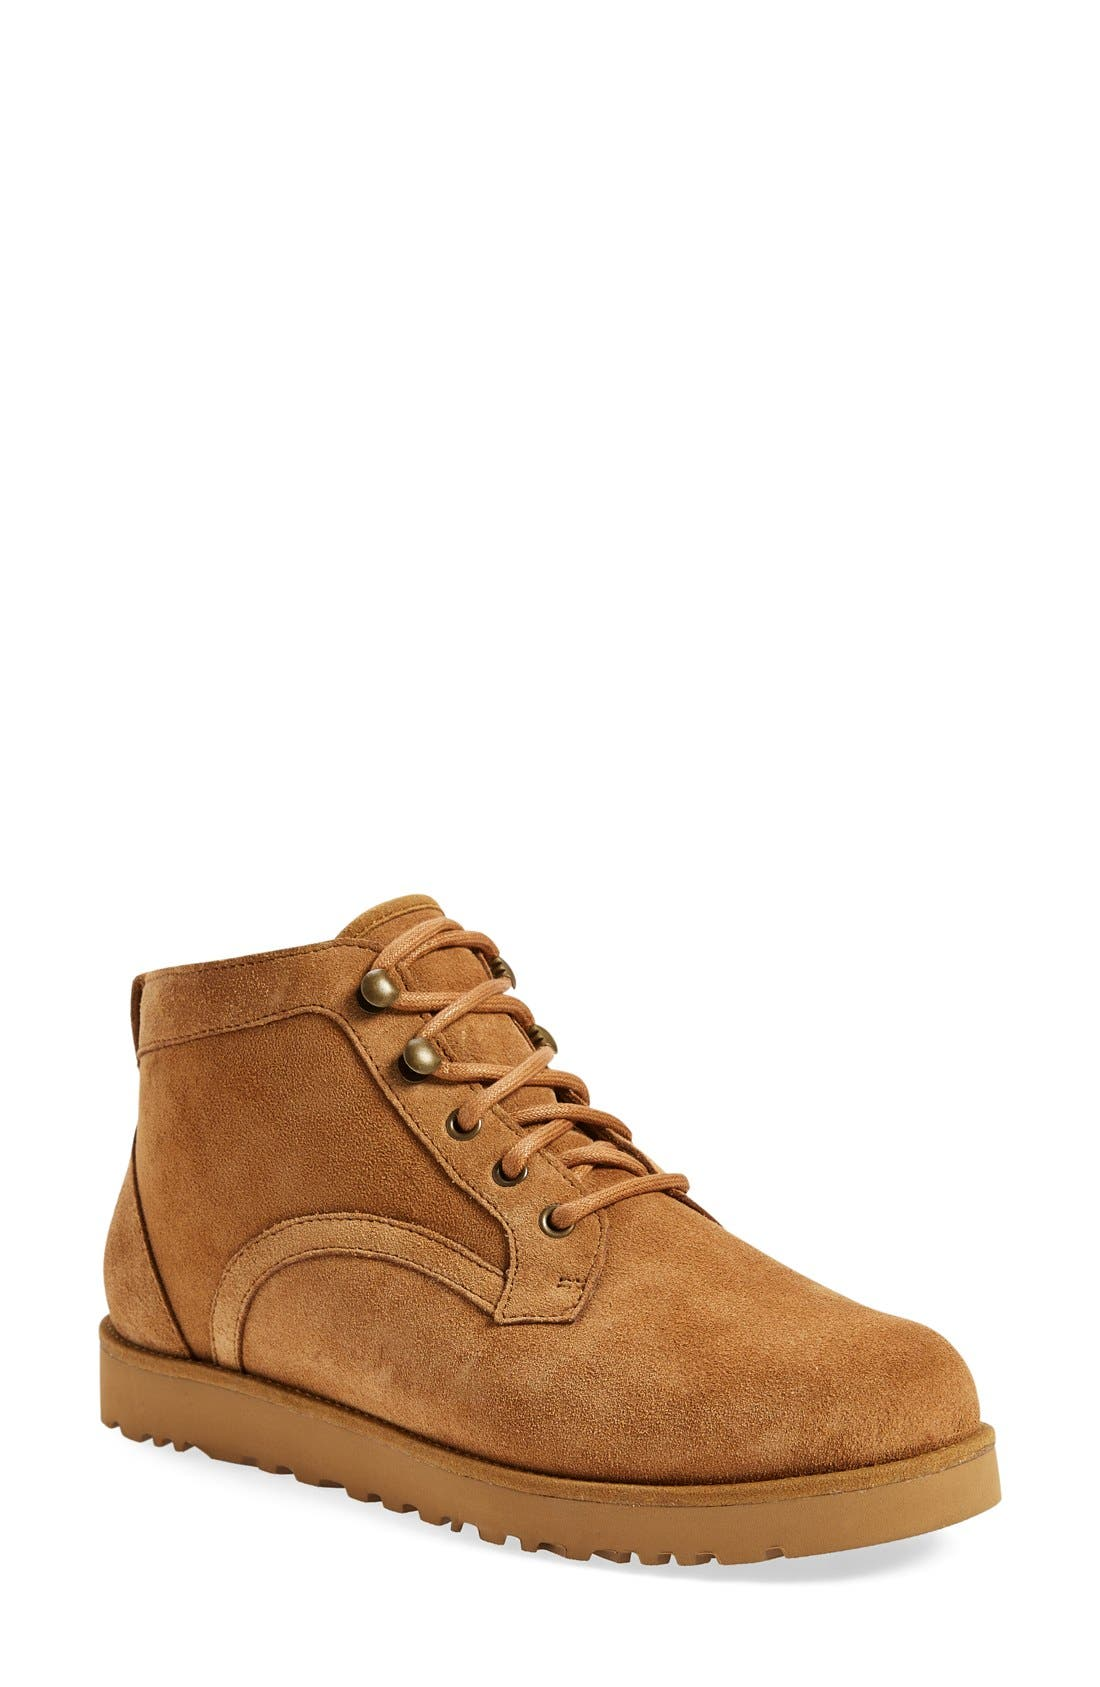 Bethany - Classic Slim<sup>™</sup> Water Resistant Chukka Boot,                             Main thumbnail 1, color,                             Chestnut Suede